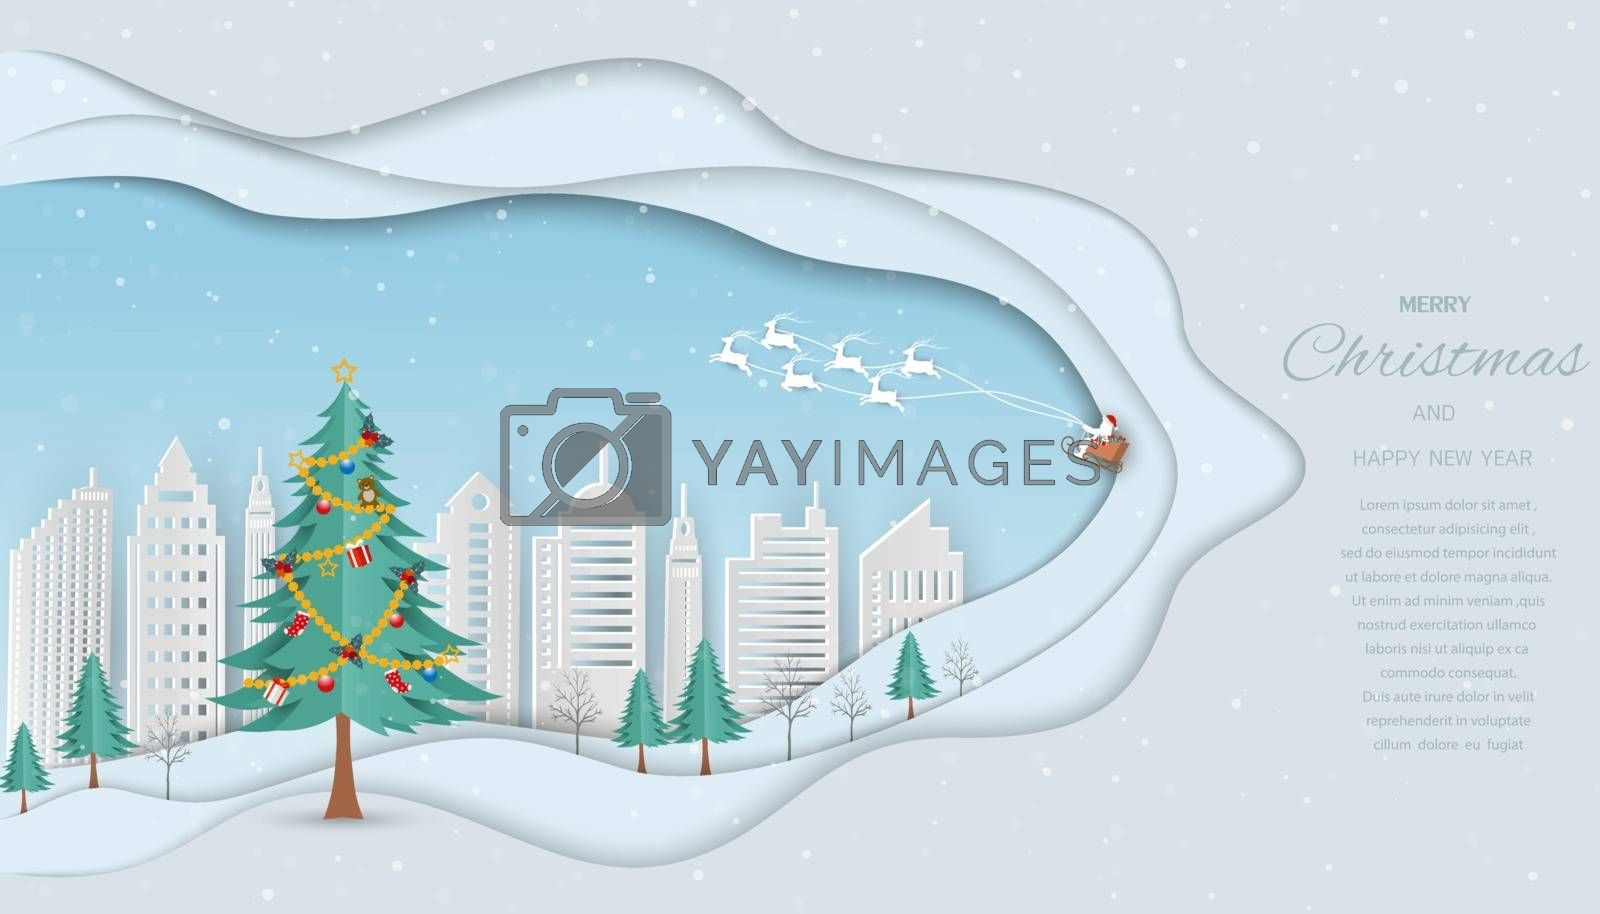 Merry Christmas and Happy new year greeting card,Santa Claus coming to white  city with gift boxes on winter background,vector illustration